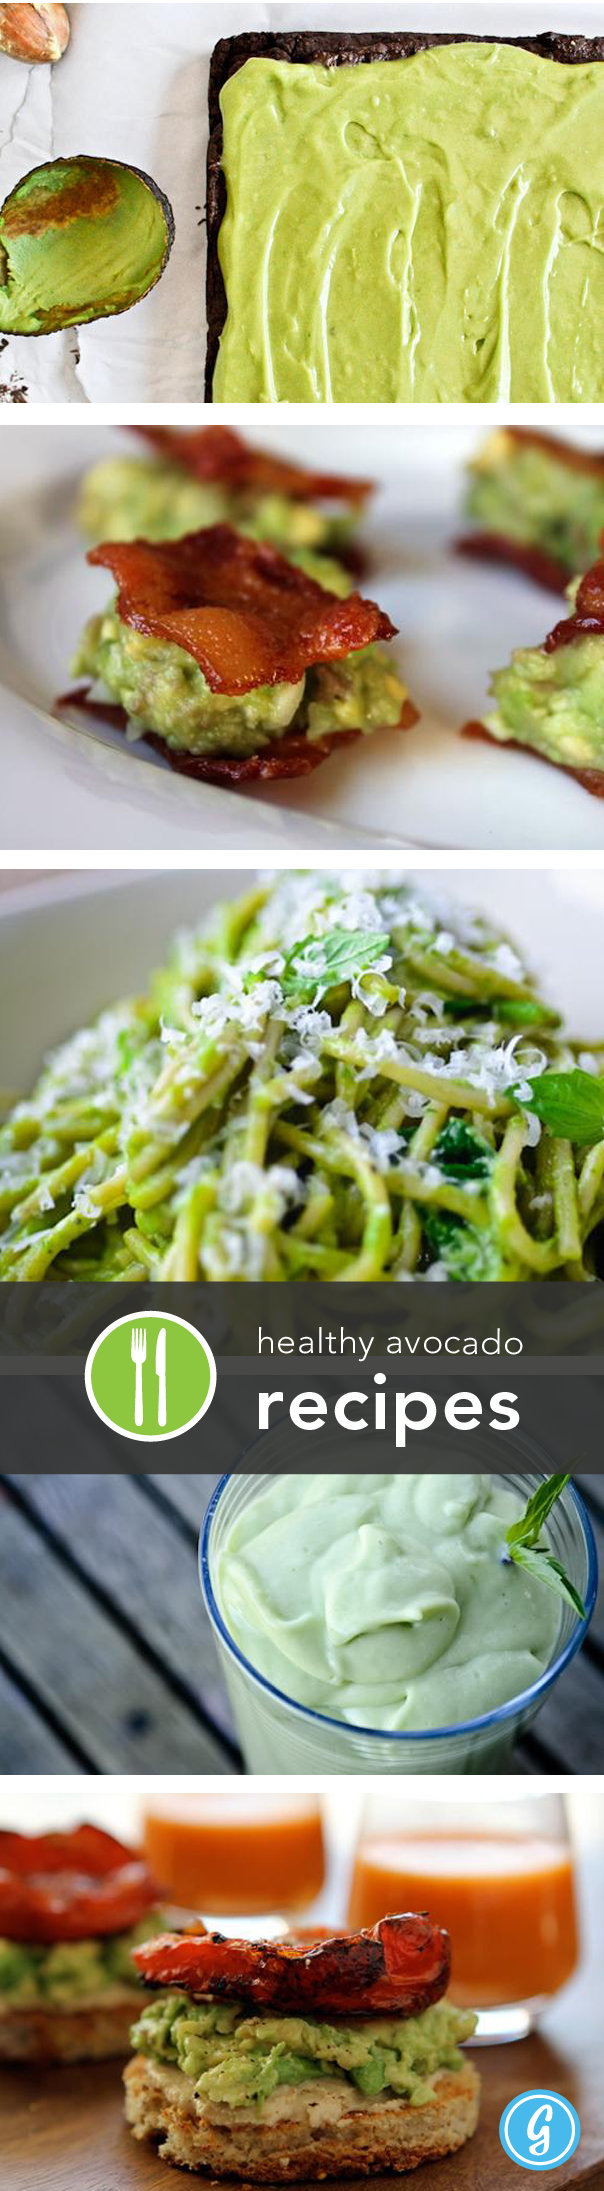 The Greatist Table: 5 Healthy Tomato Recipes from Around the Web The Greatist Table: 5 Healthy Tomato Recipes from Around the Web new images